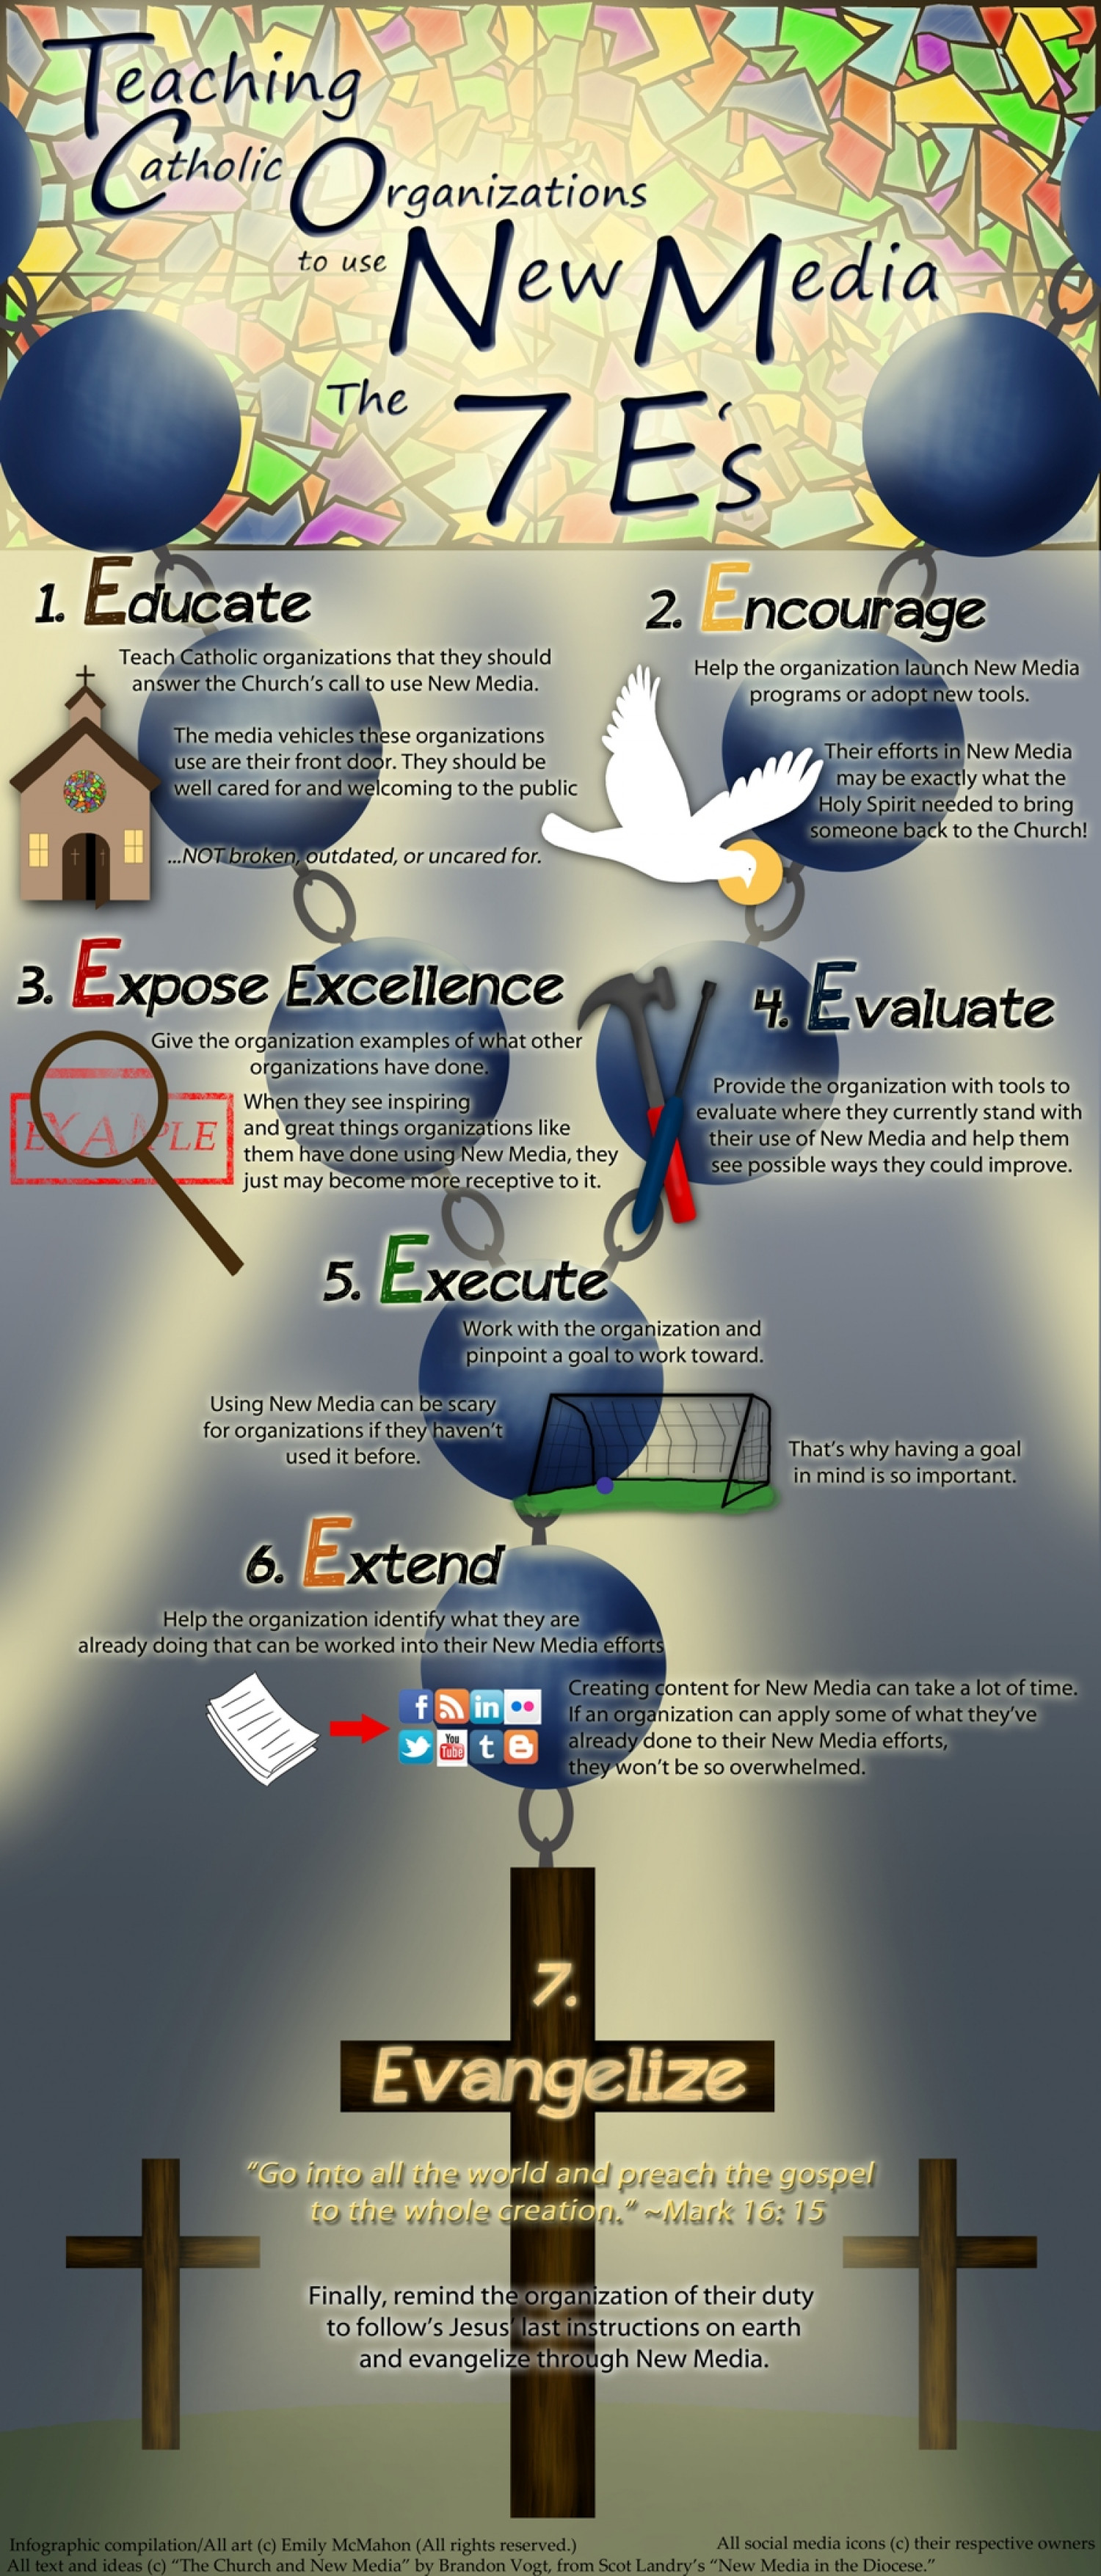 The 7 E's of Teaching Catholic Organizations to use New Media Infographic